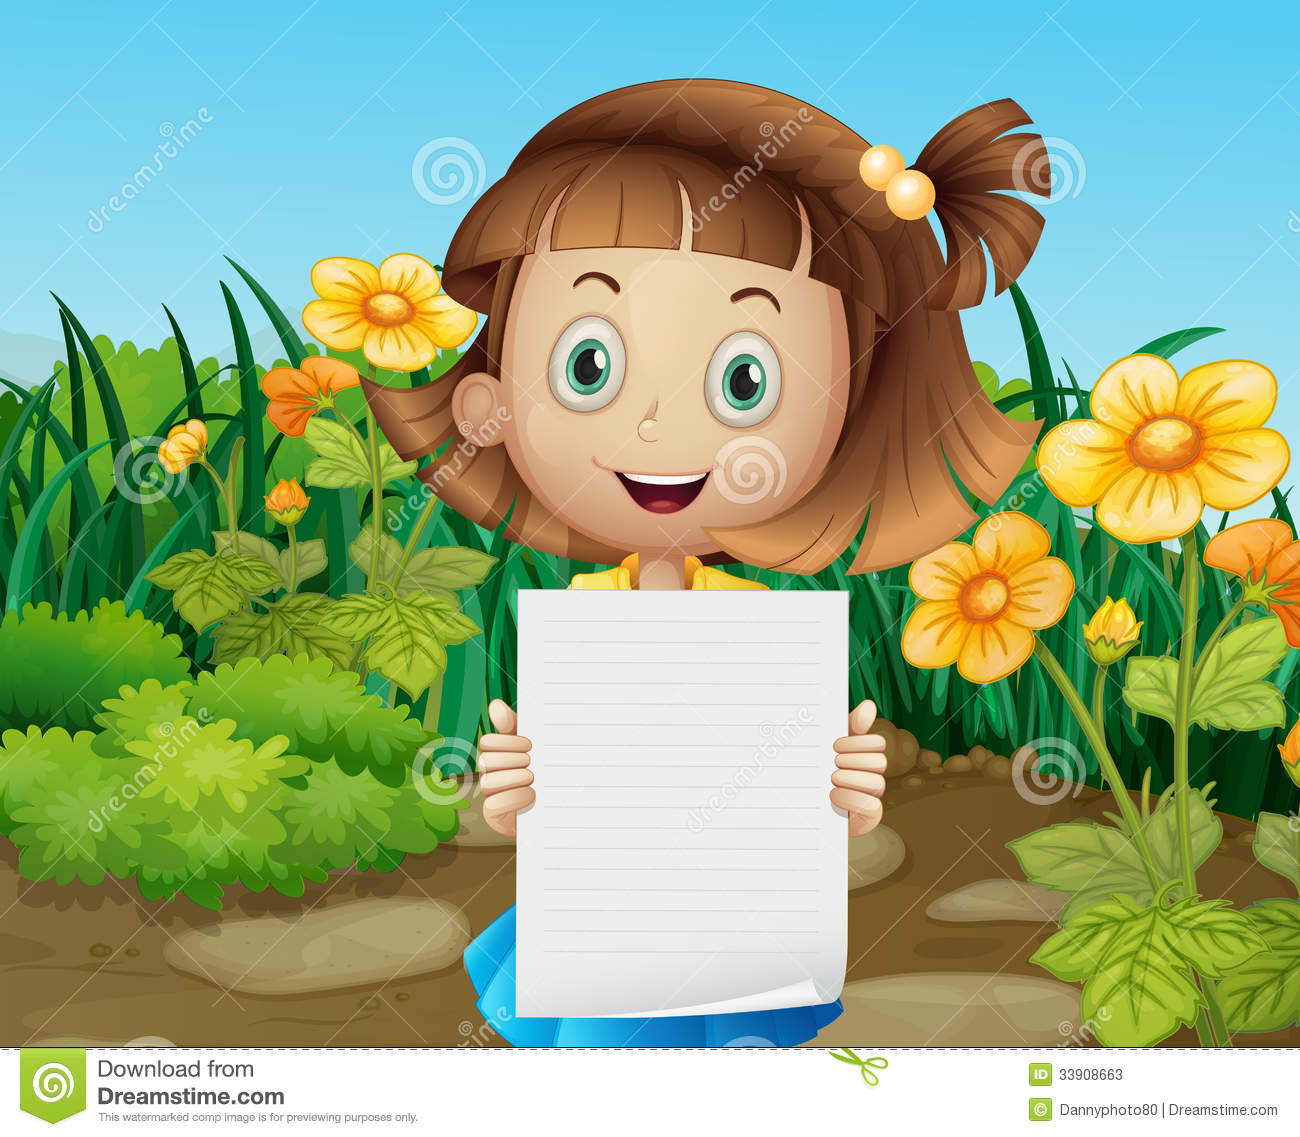 A Girl Holding An Empty Piece Of Paper Royalty Free Stock Photo.